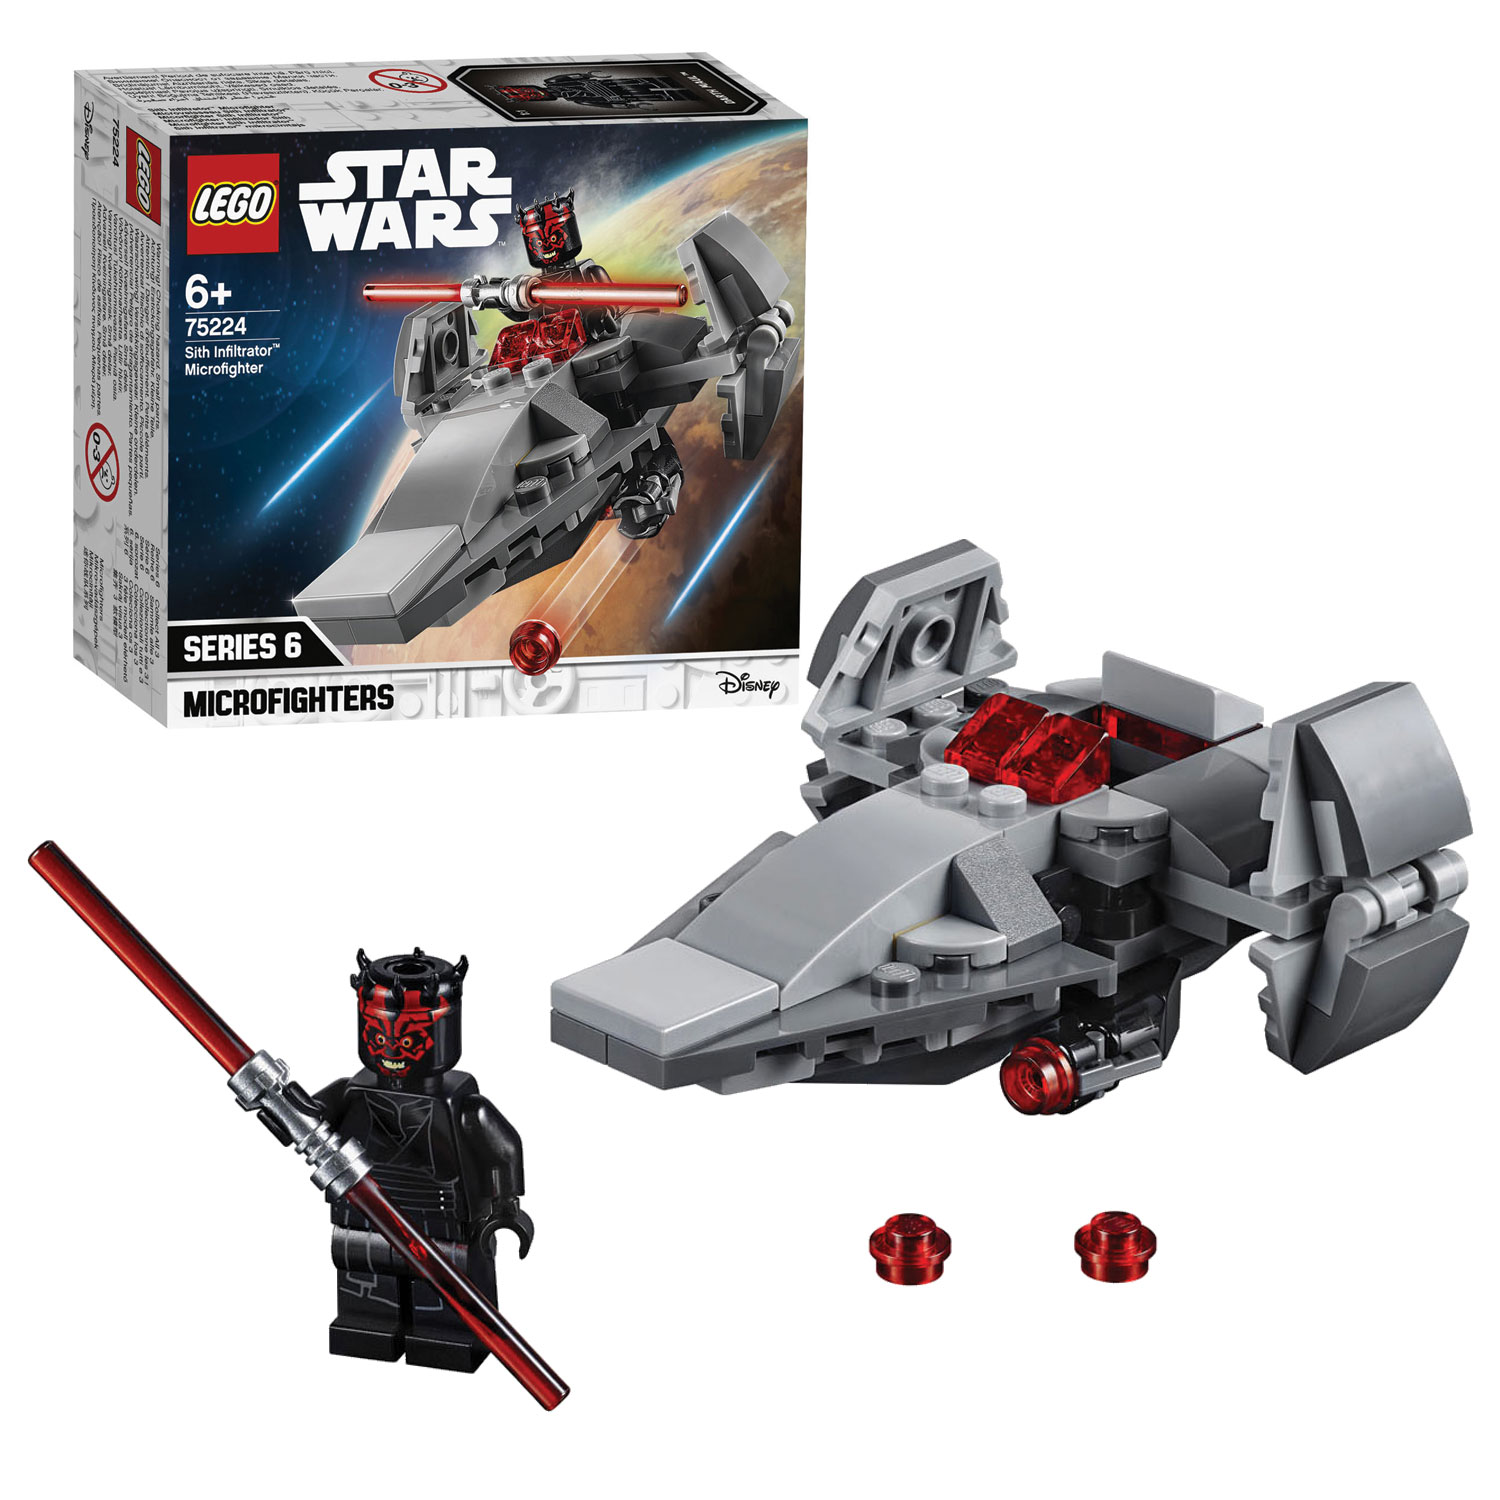 LEGO Star Wars Sith Infiltrator Microfighter - 75224